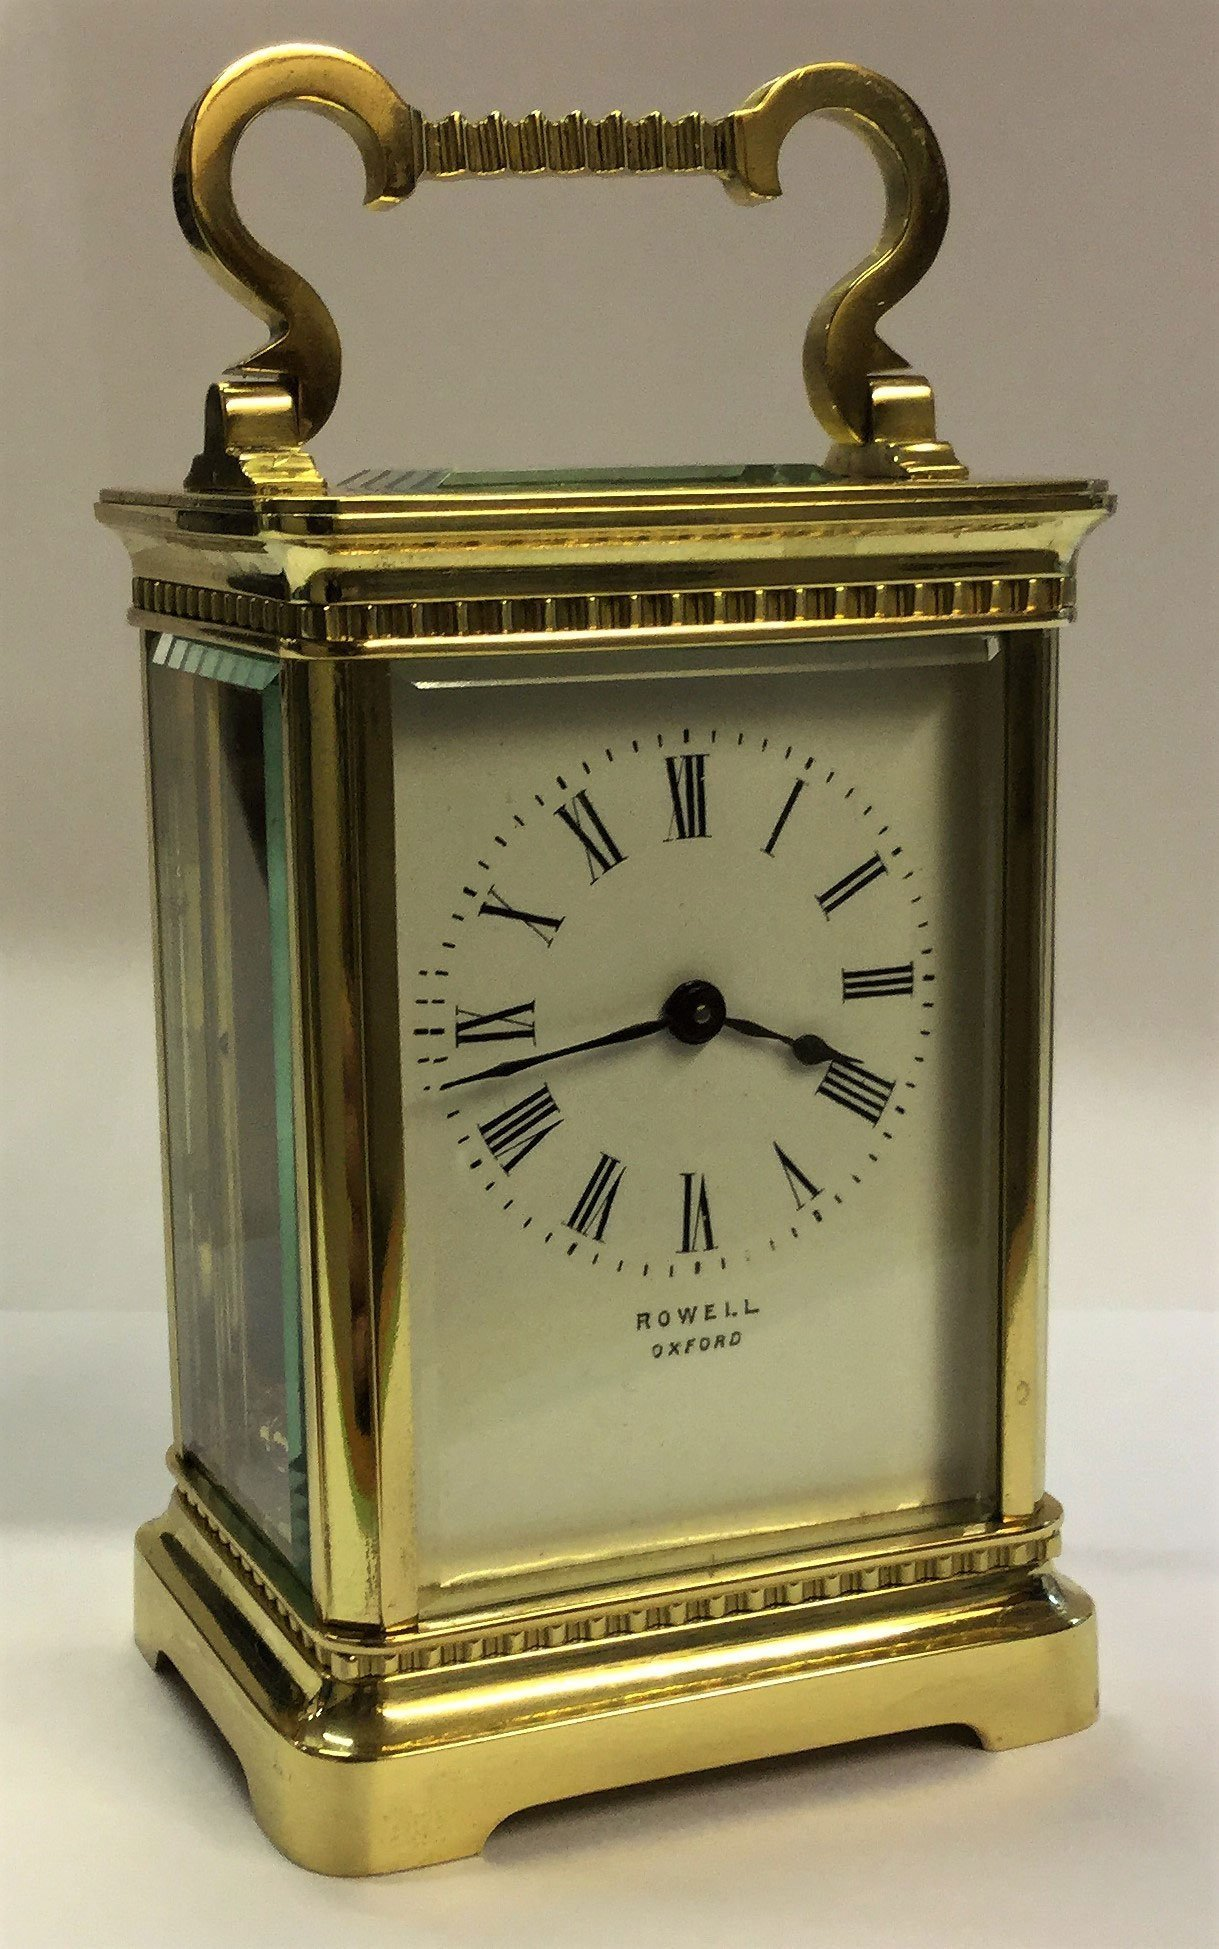 French carriage timepiece